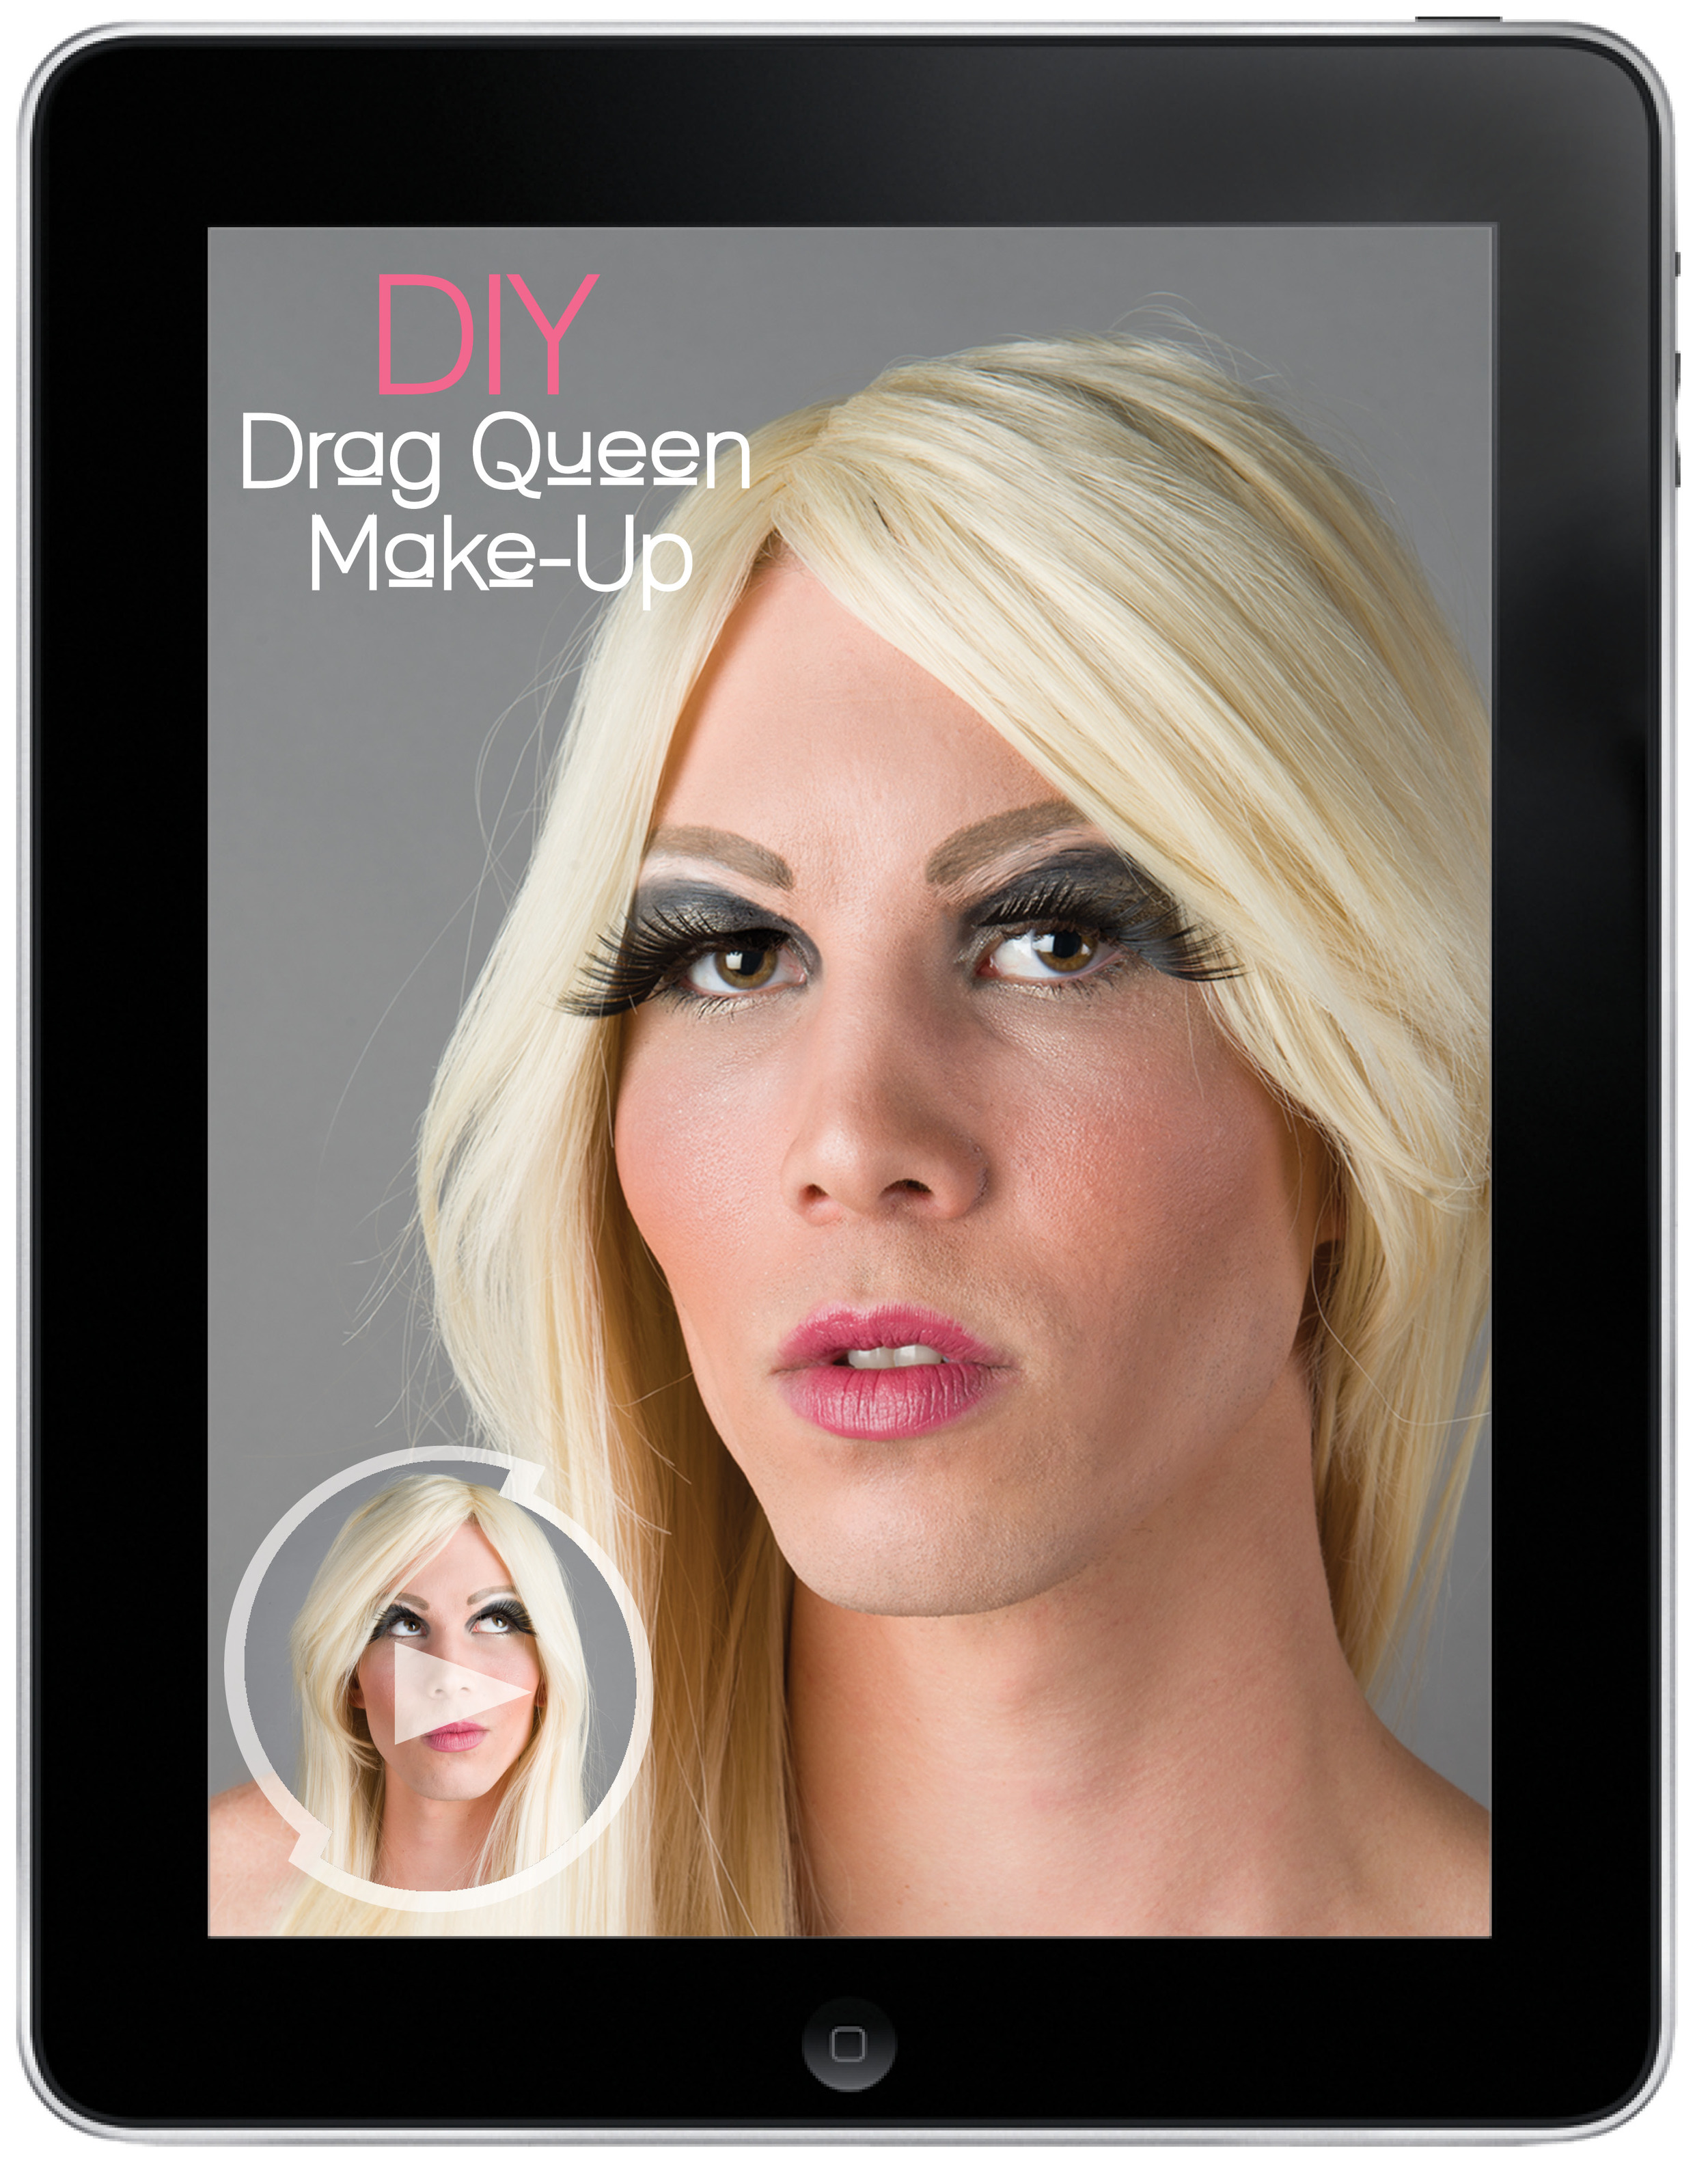 """The magazine also offers interactive elements such as learning """"Do It Yourself"""" drag queen make-up tips."""